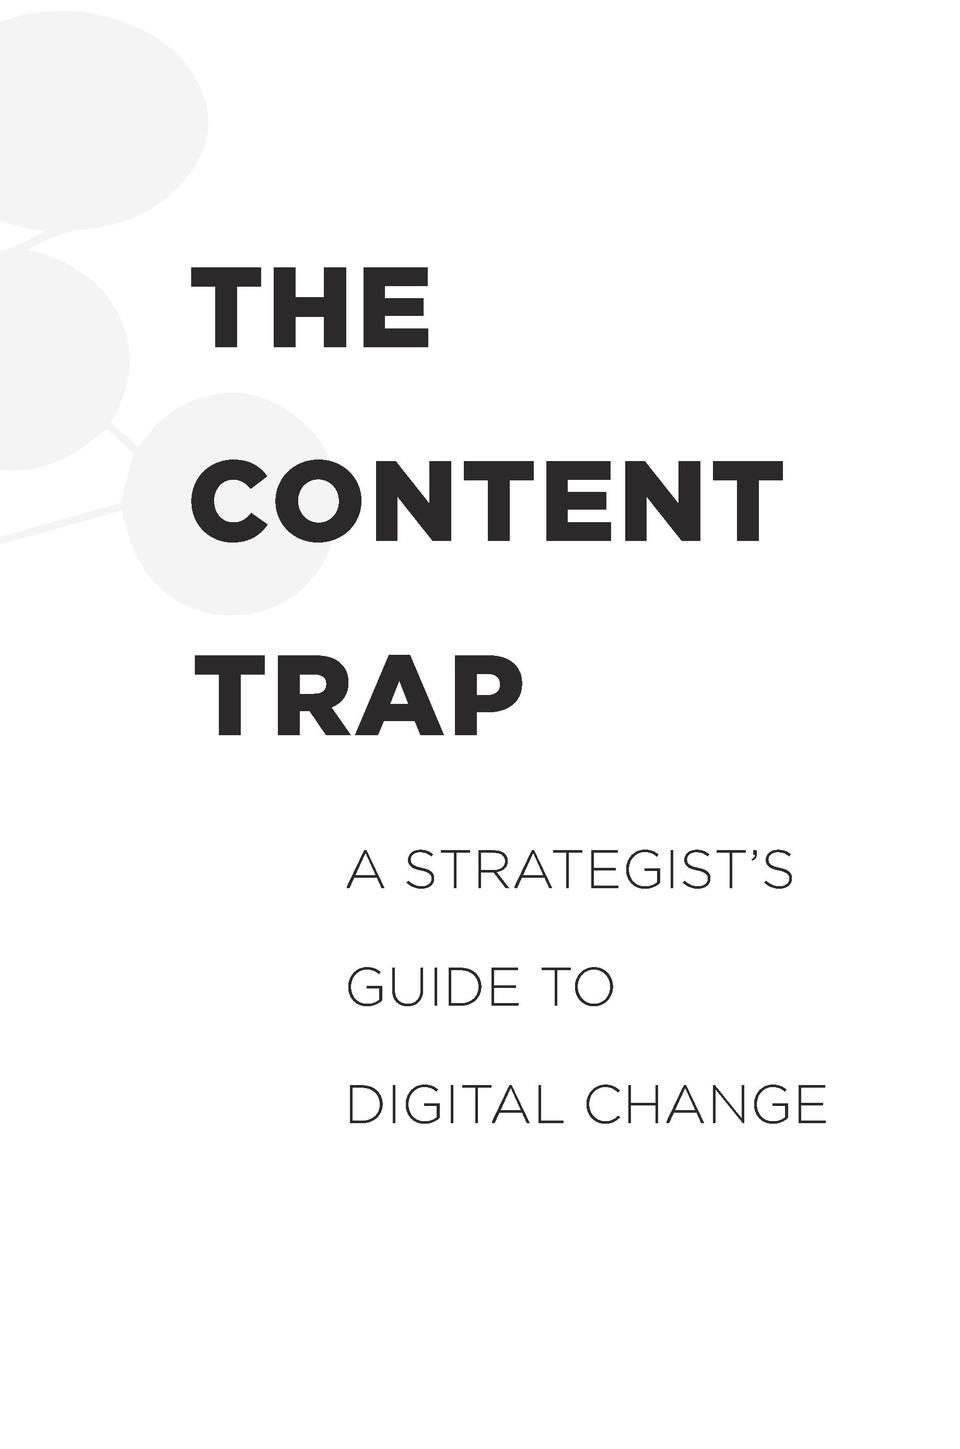 THE CONTENT TRAP A STRATEGIST   S GUIDE TO DIGITAL CHANGE  Anan_9780812995381_3p_all_r5.j.indd 5  9 1 16 8 09 AM